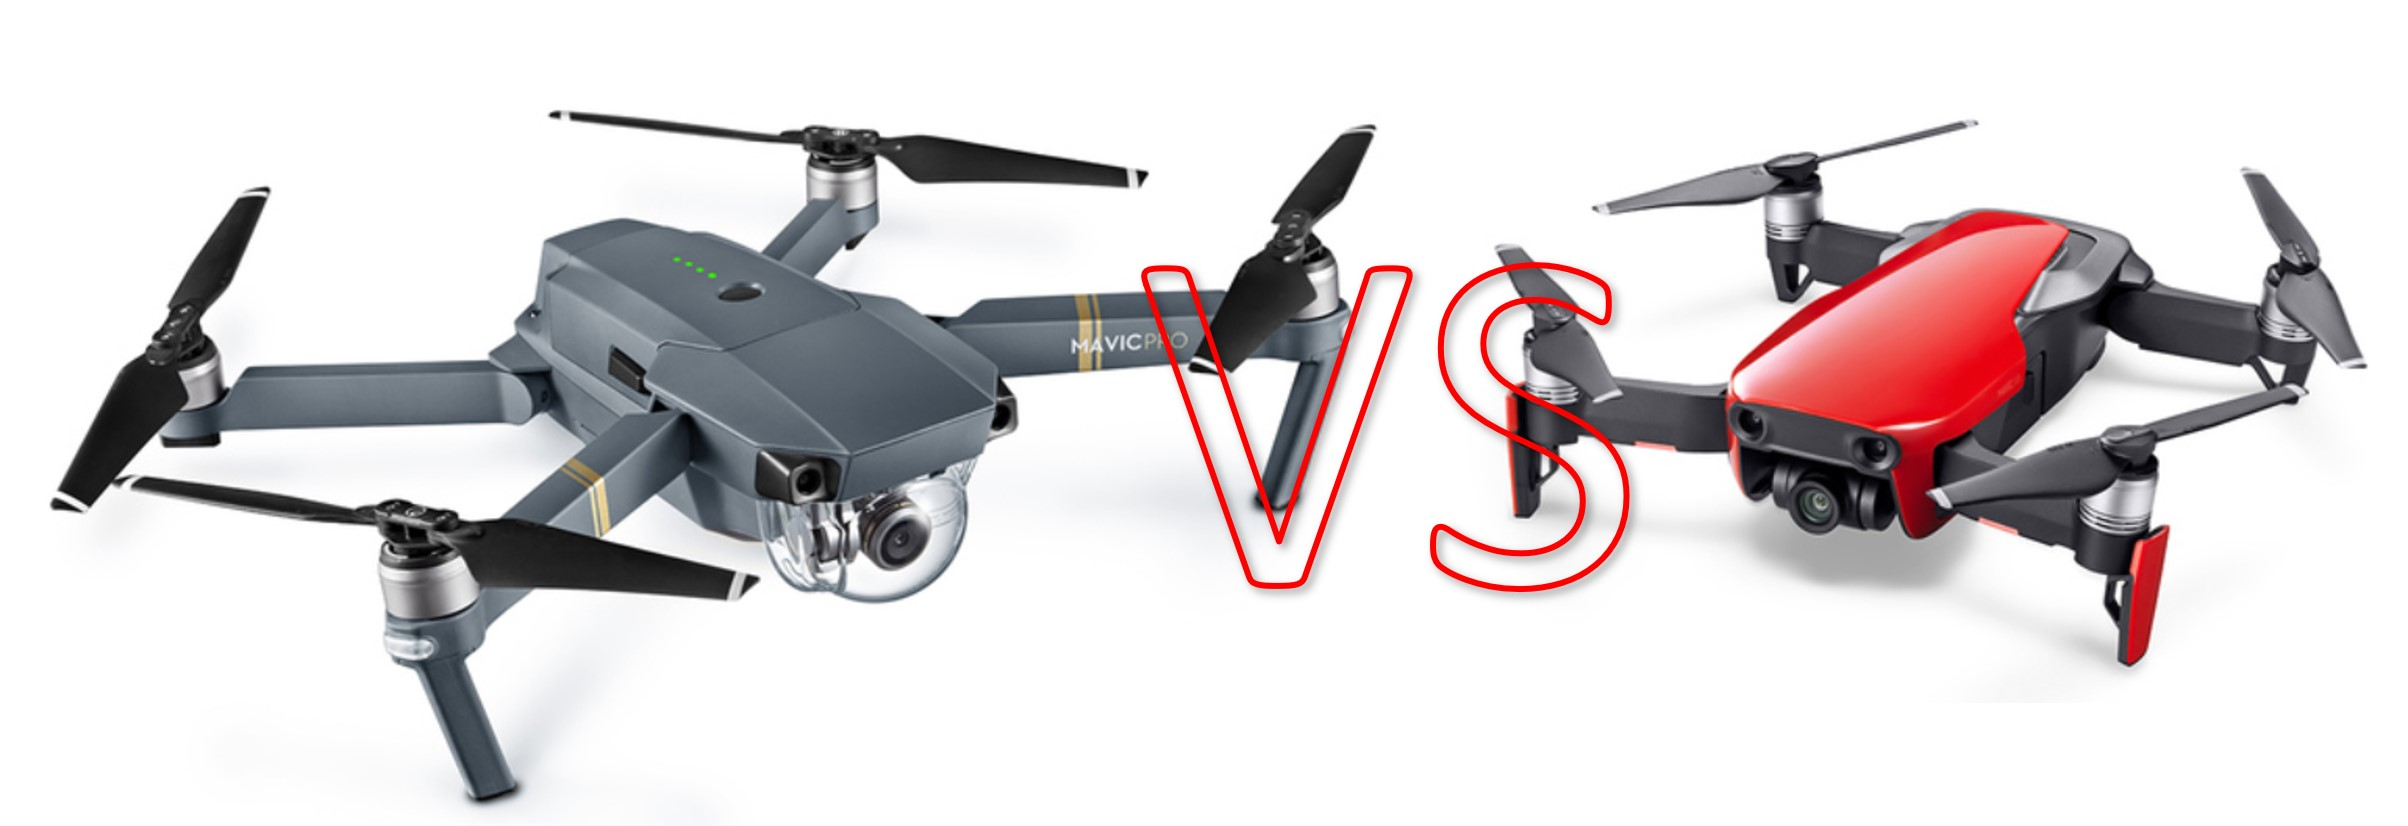 DJI Mavic Air Vs Pro Who Is The New King